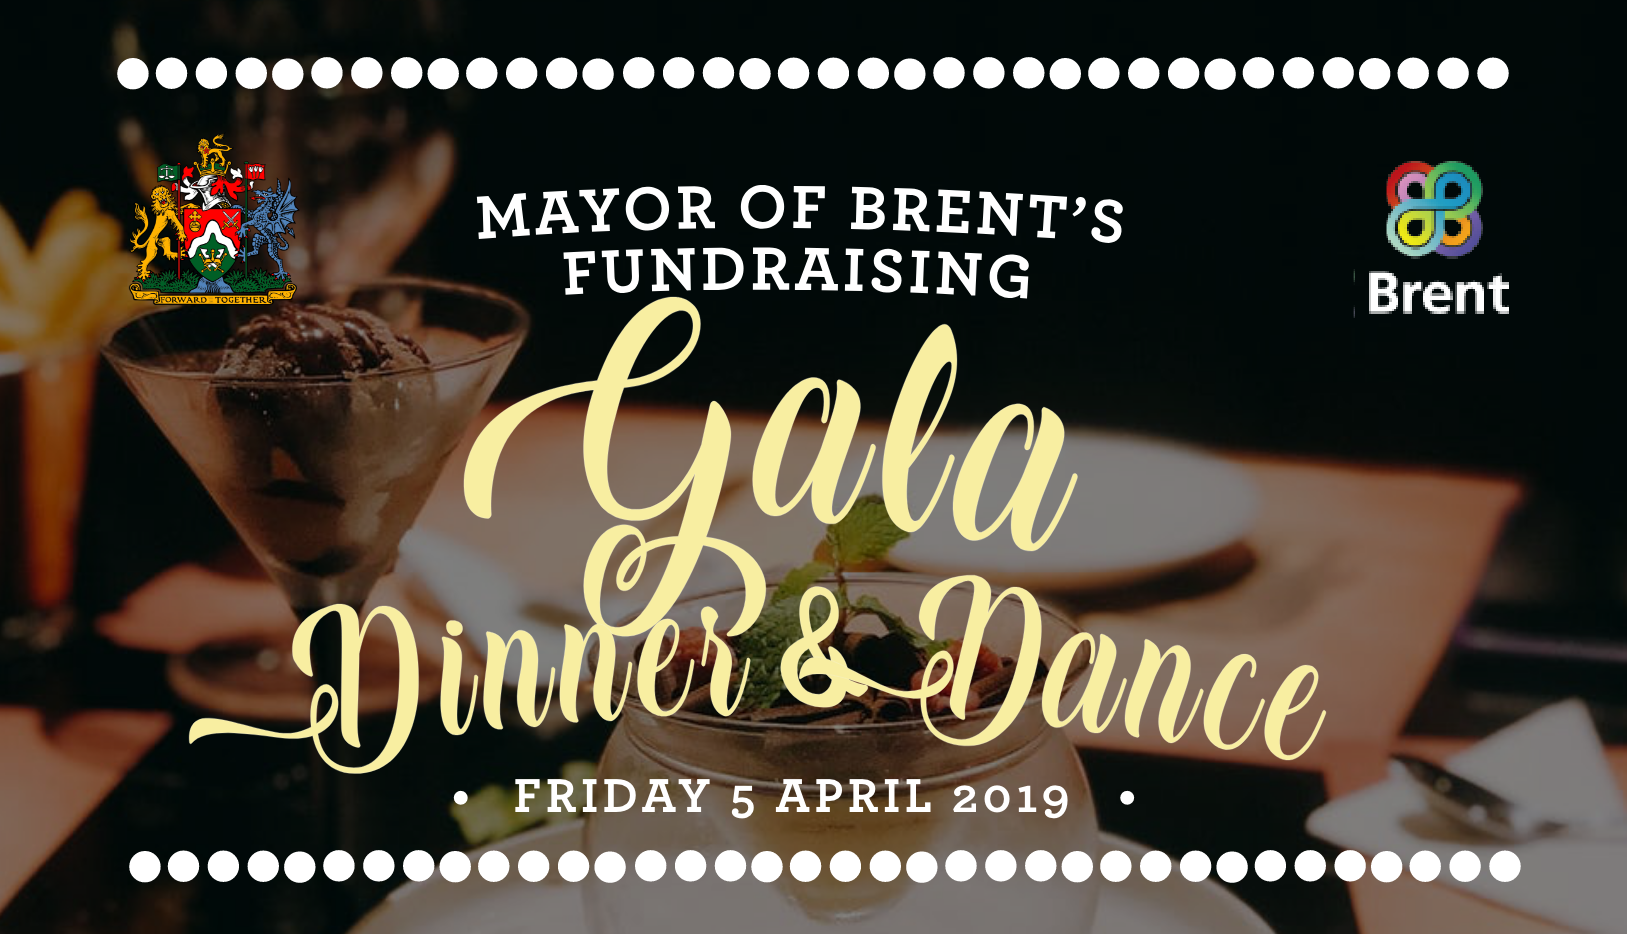 Mayor of Brent's Gala Dinner & Dance – April 2019